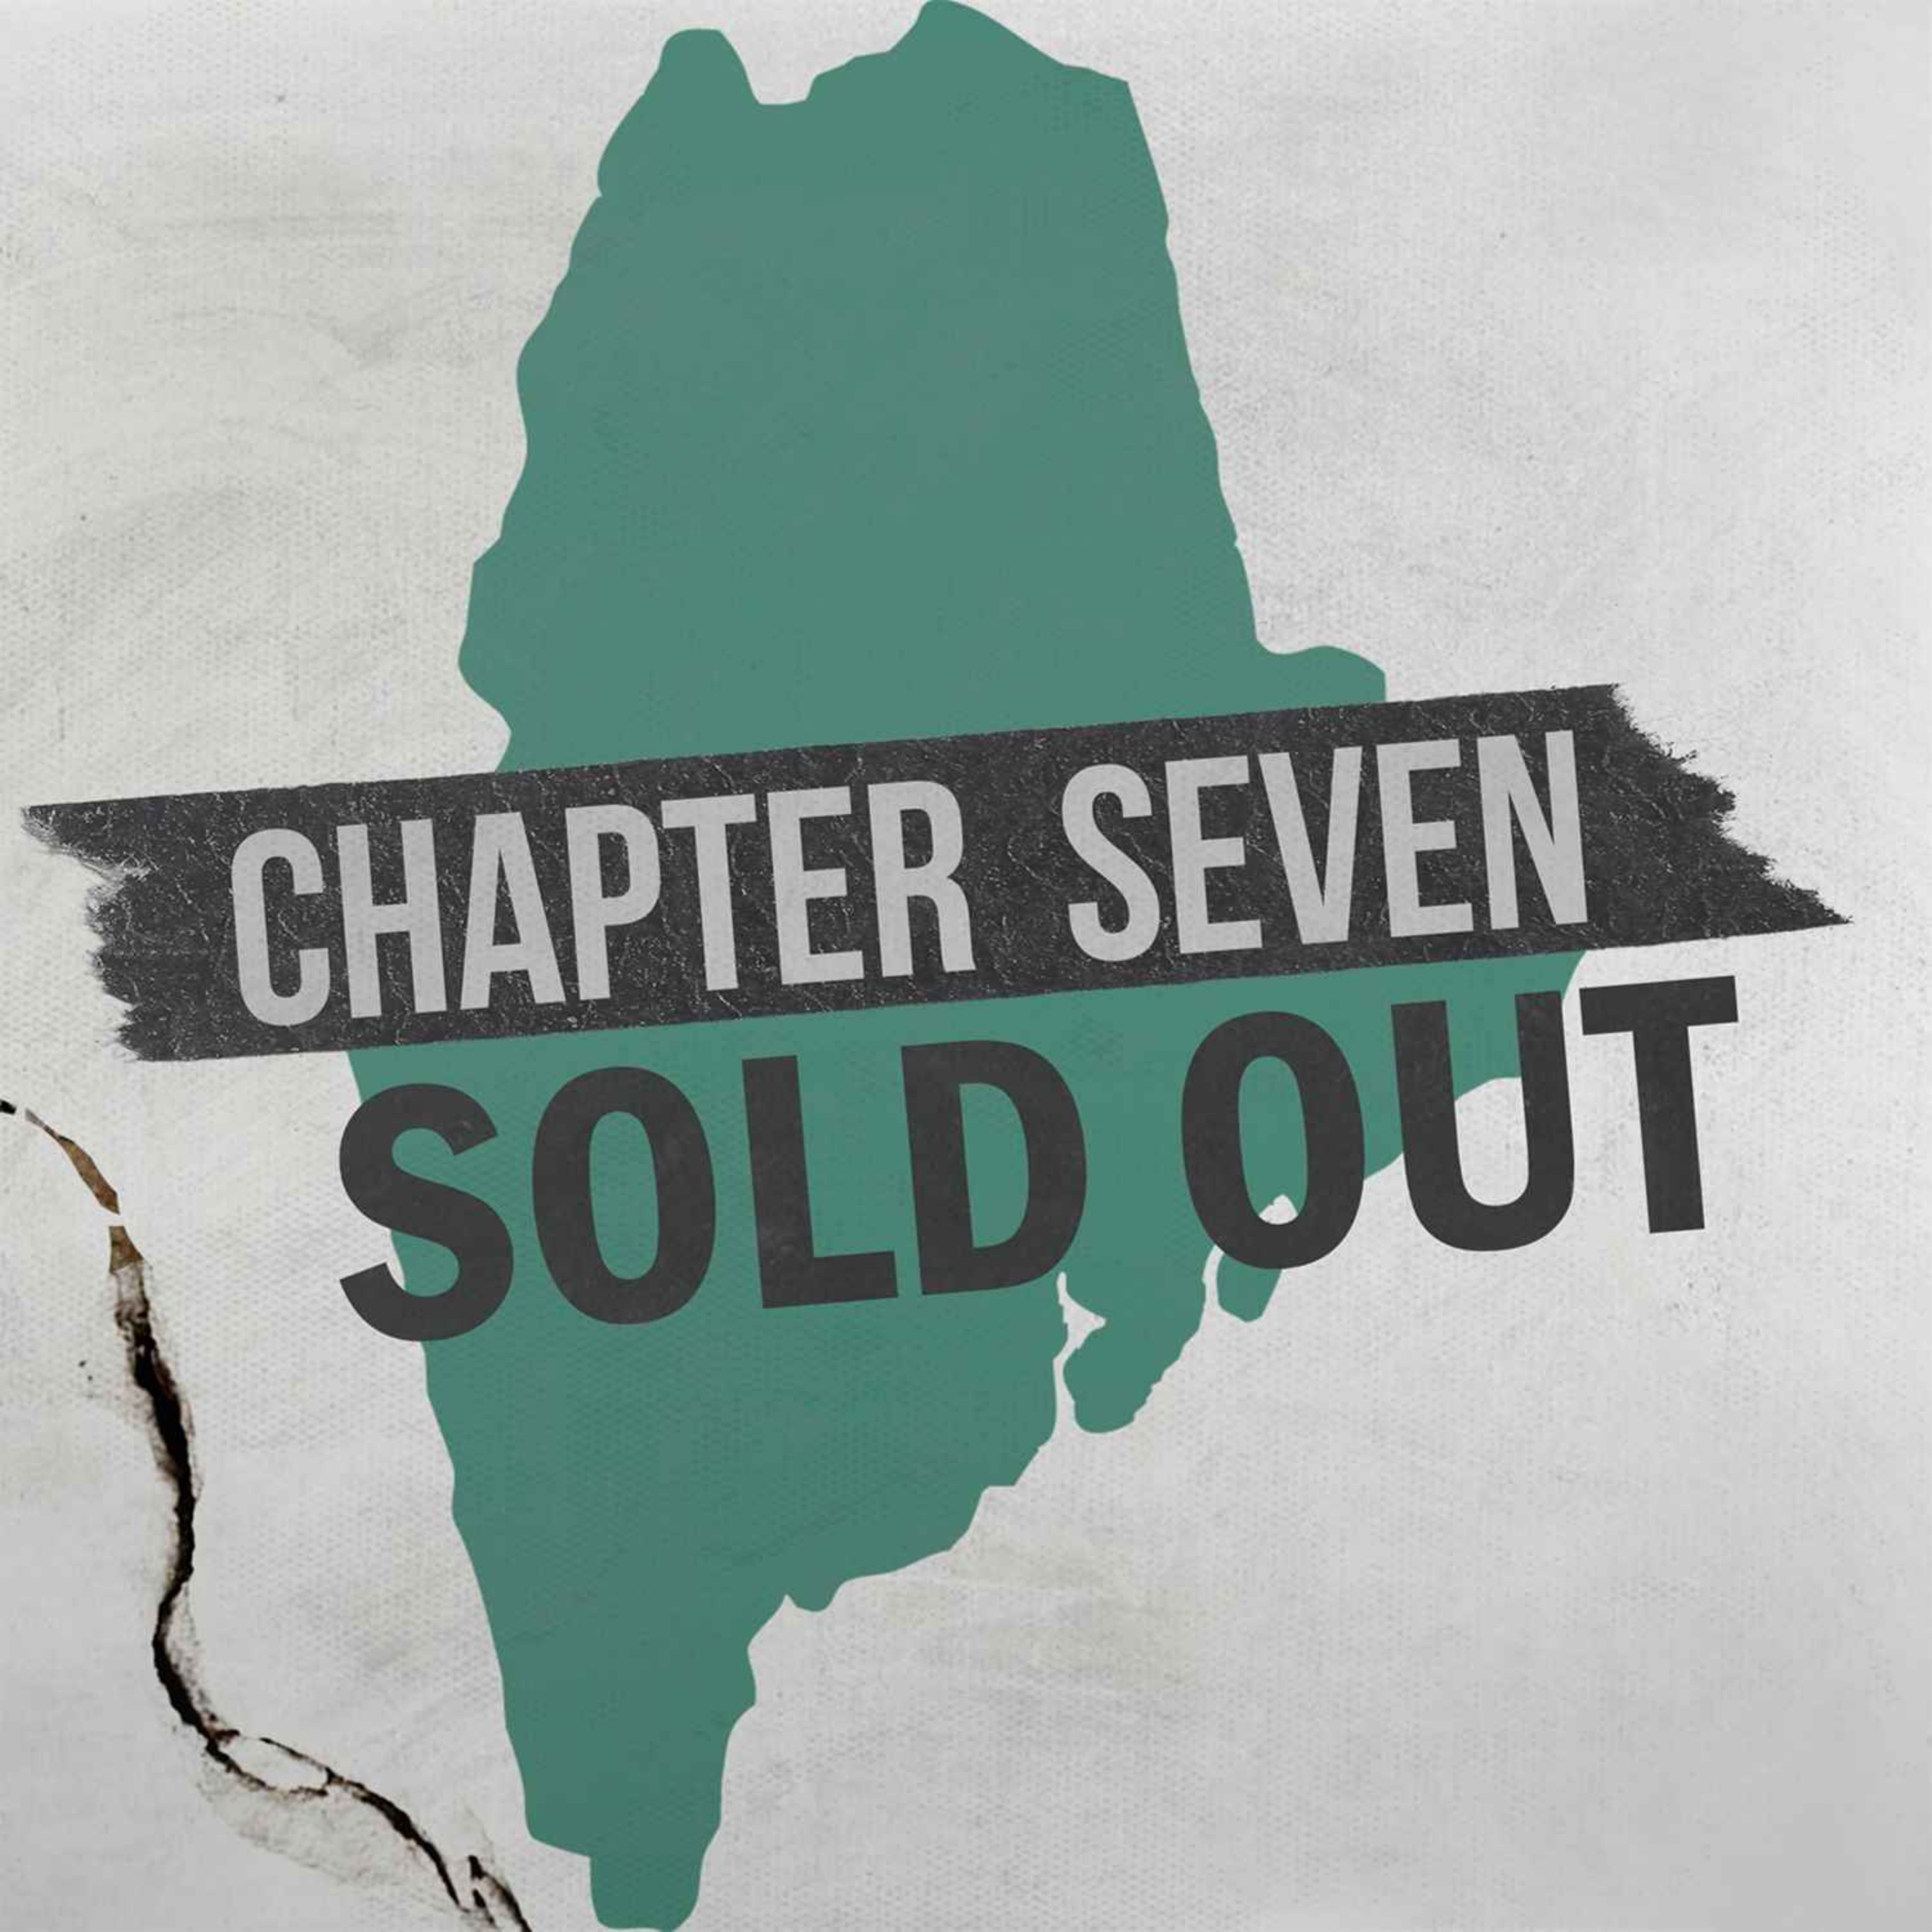 Chapter Seven: Sold Out in Maine